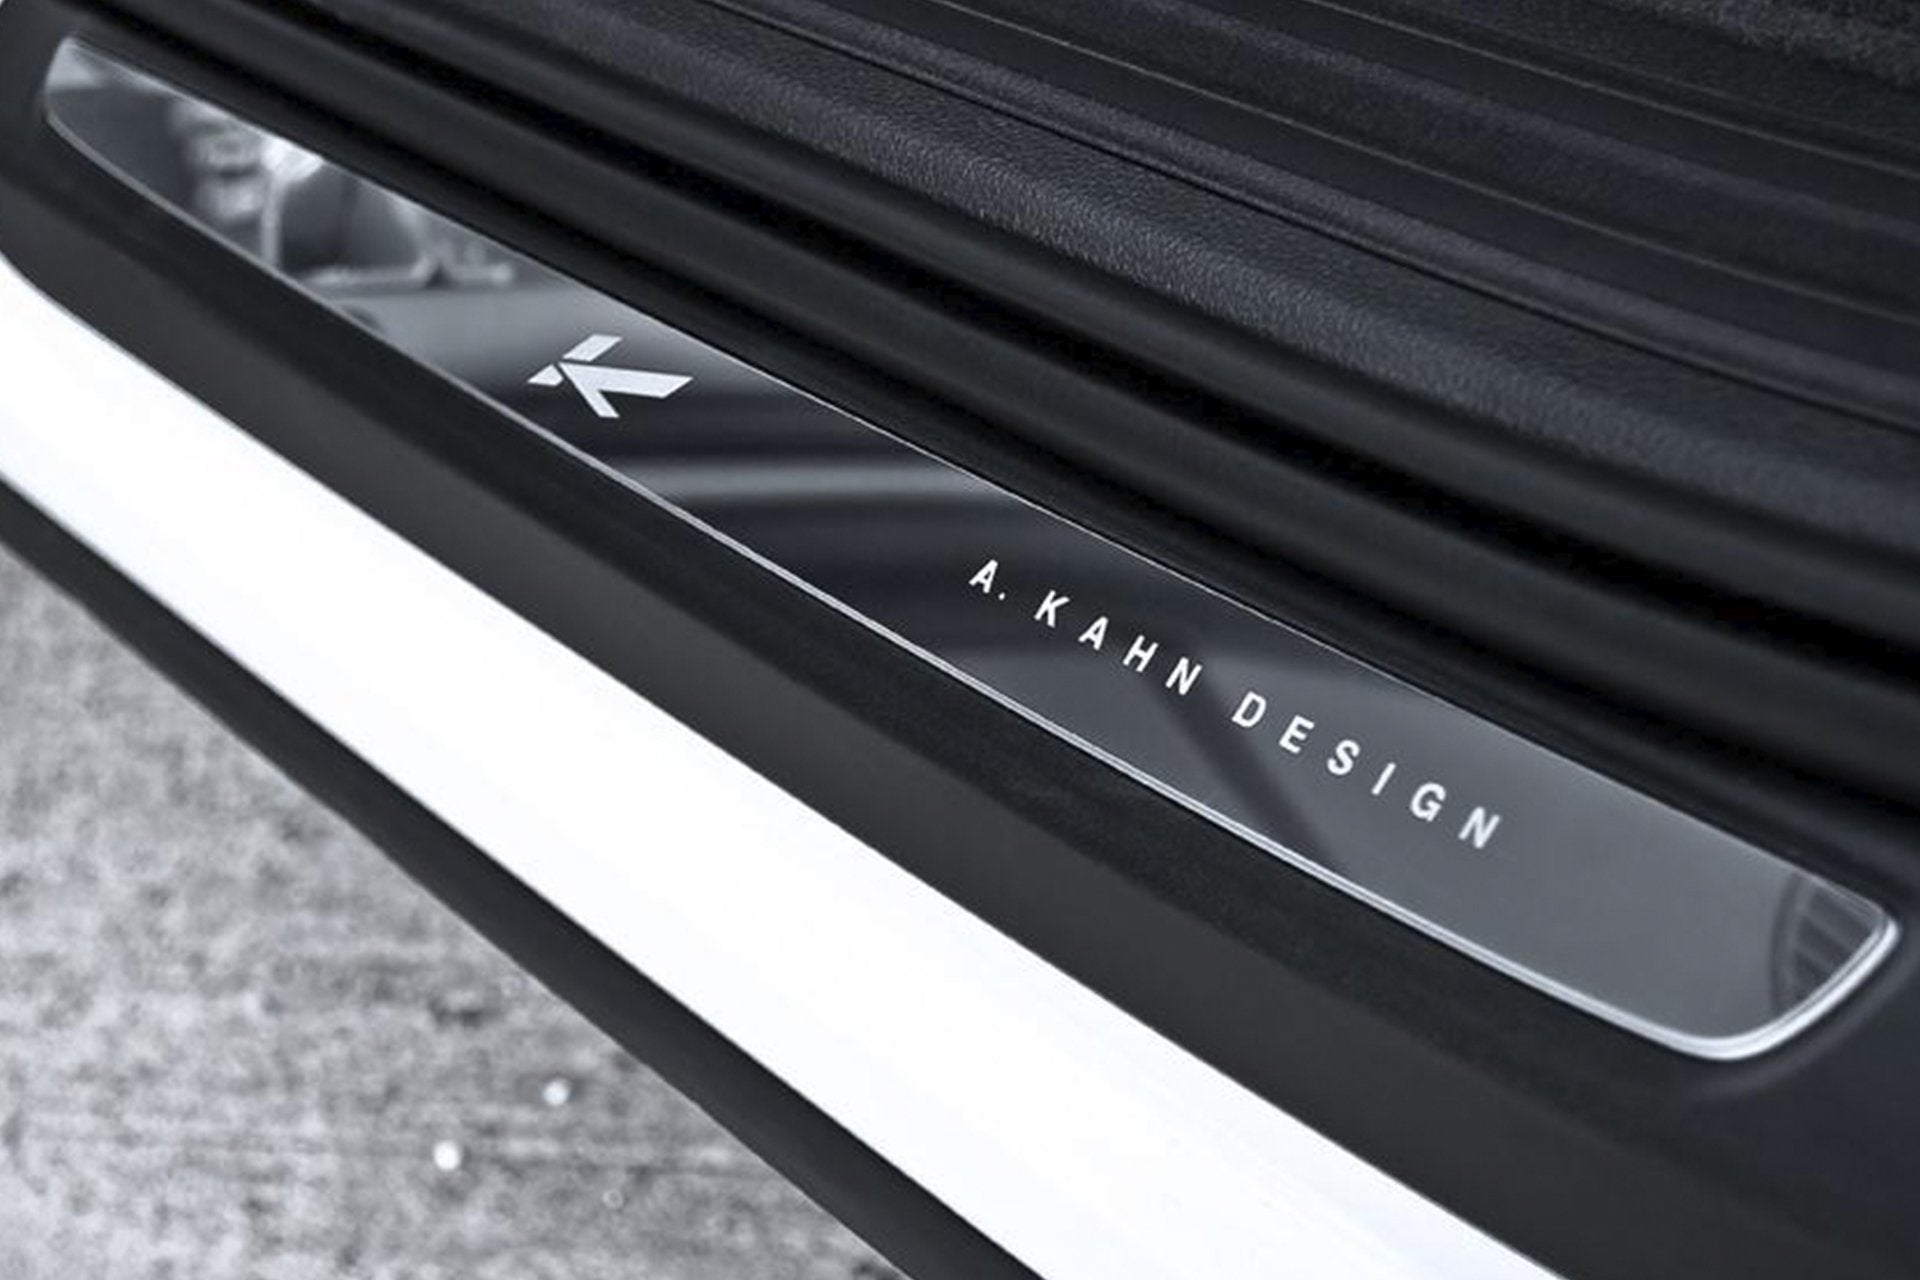 Audi A5 (2007-2012) Door Entry Sill Plates by Kahn - Image 1865